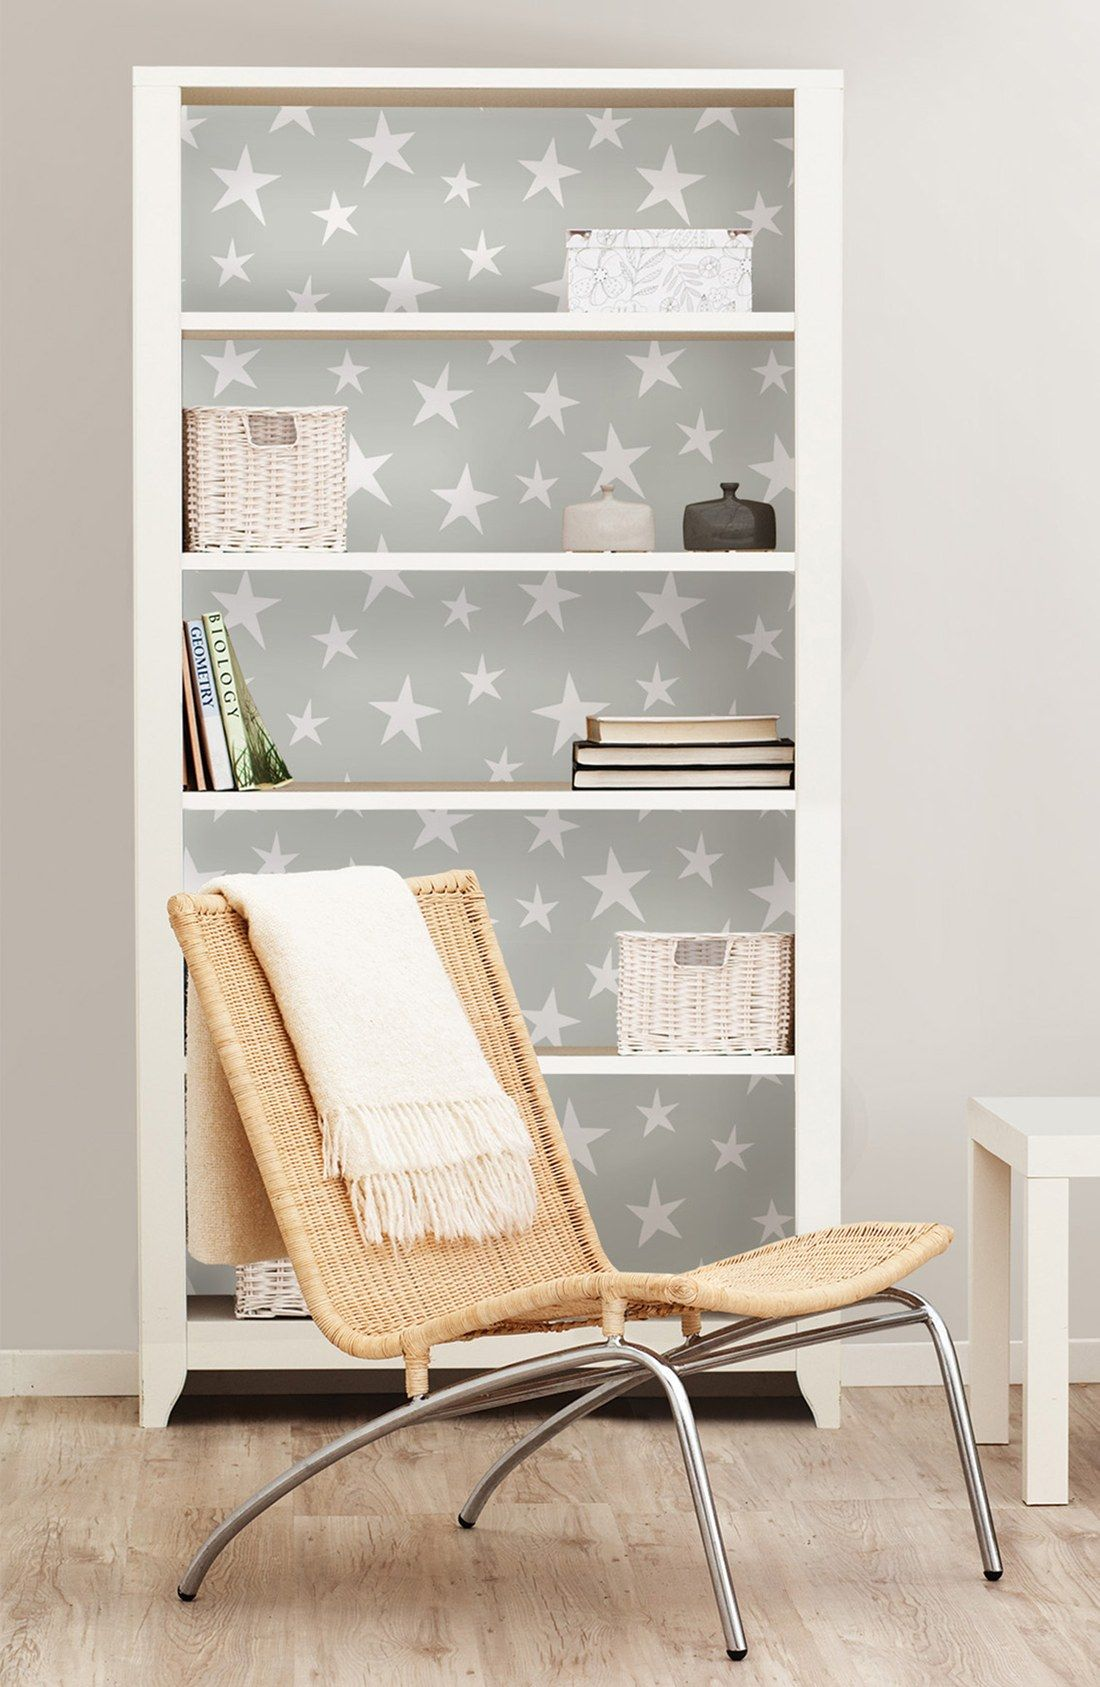 Free Shipping And Returns On Wallpops Stardust Reusable Peel